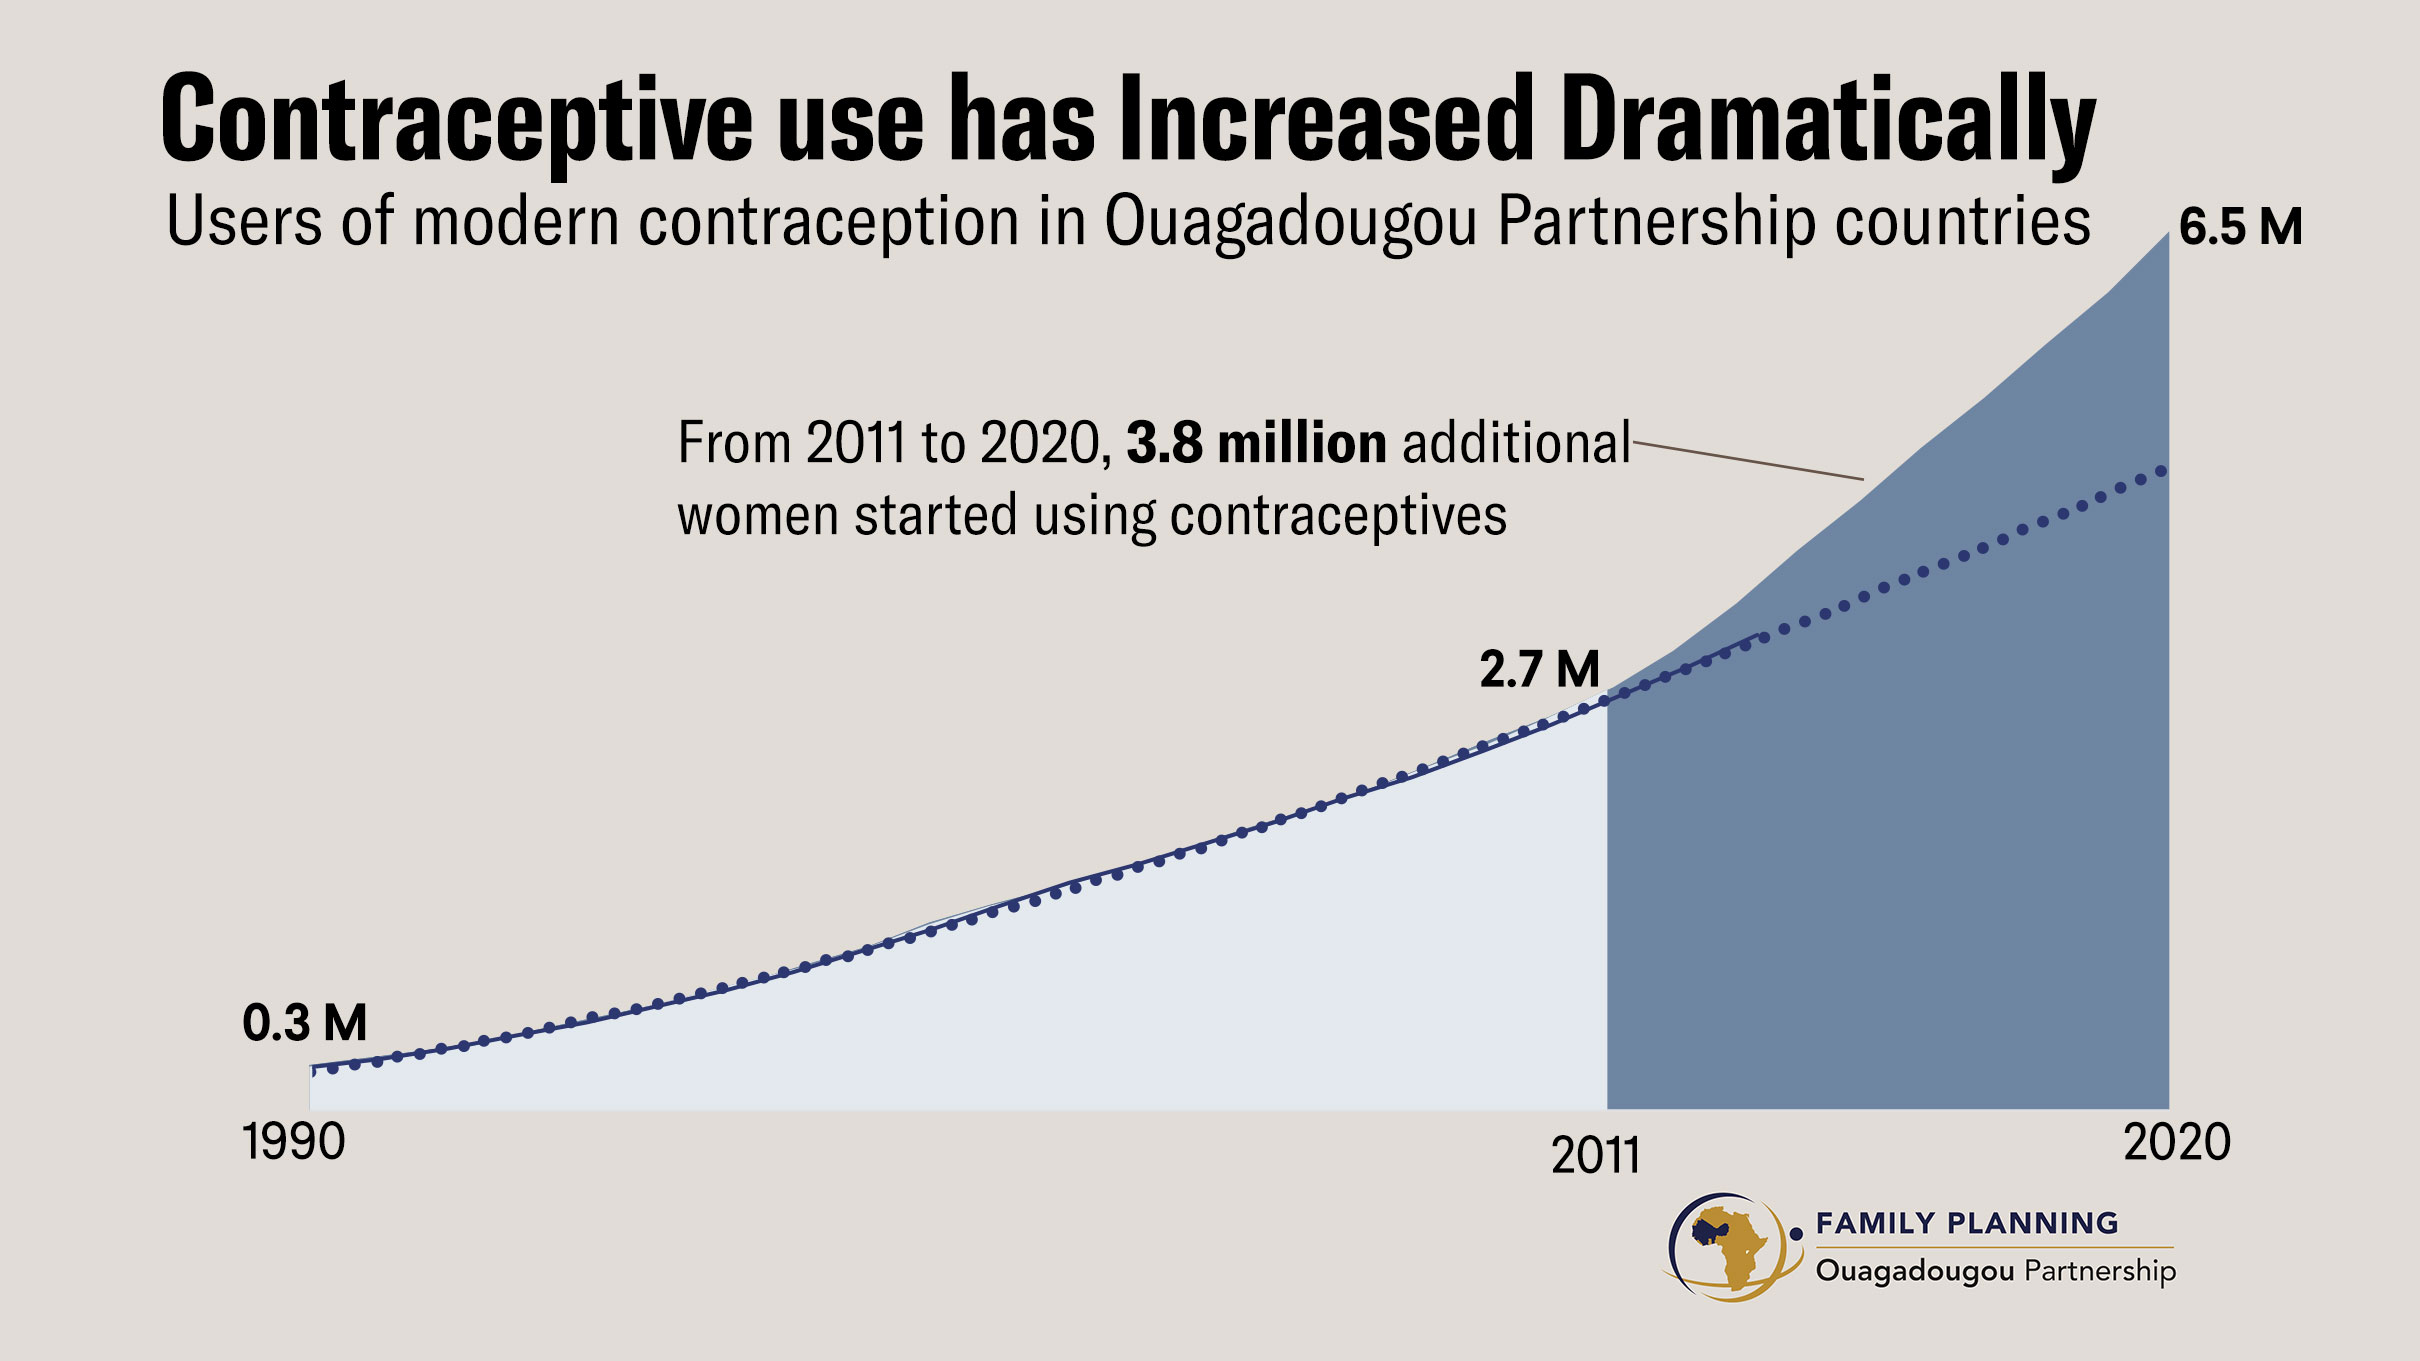 The graph shows how from 2011 to 2020, 3.8 million additional women started using contraceptives in partnership countries.